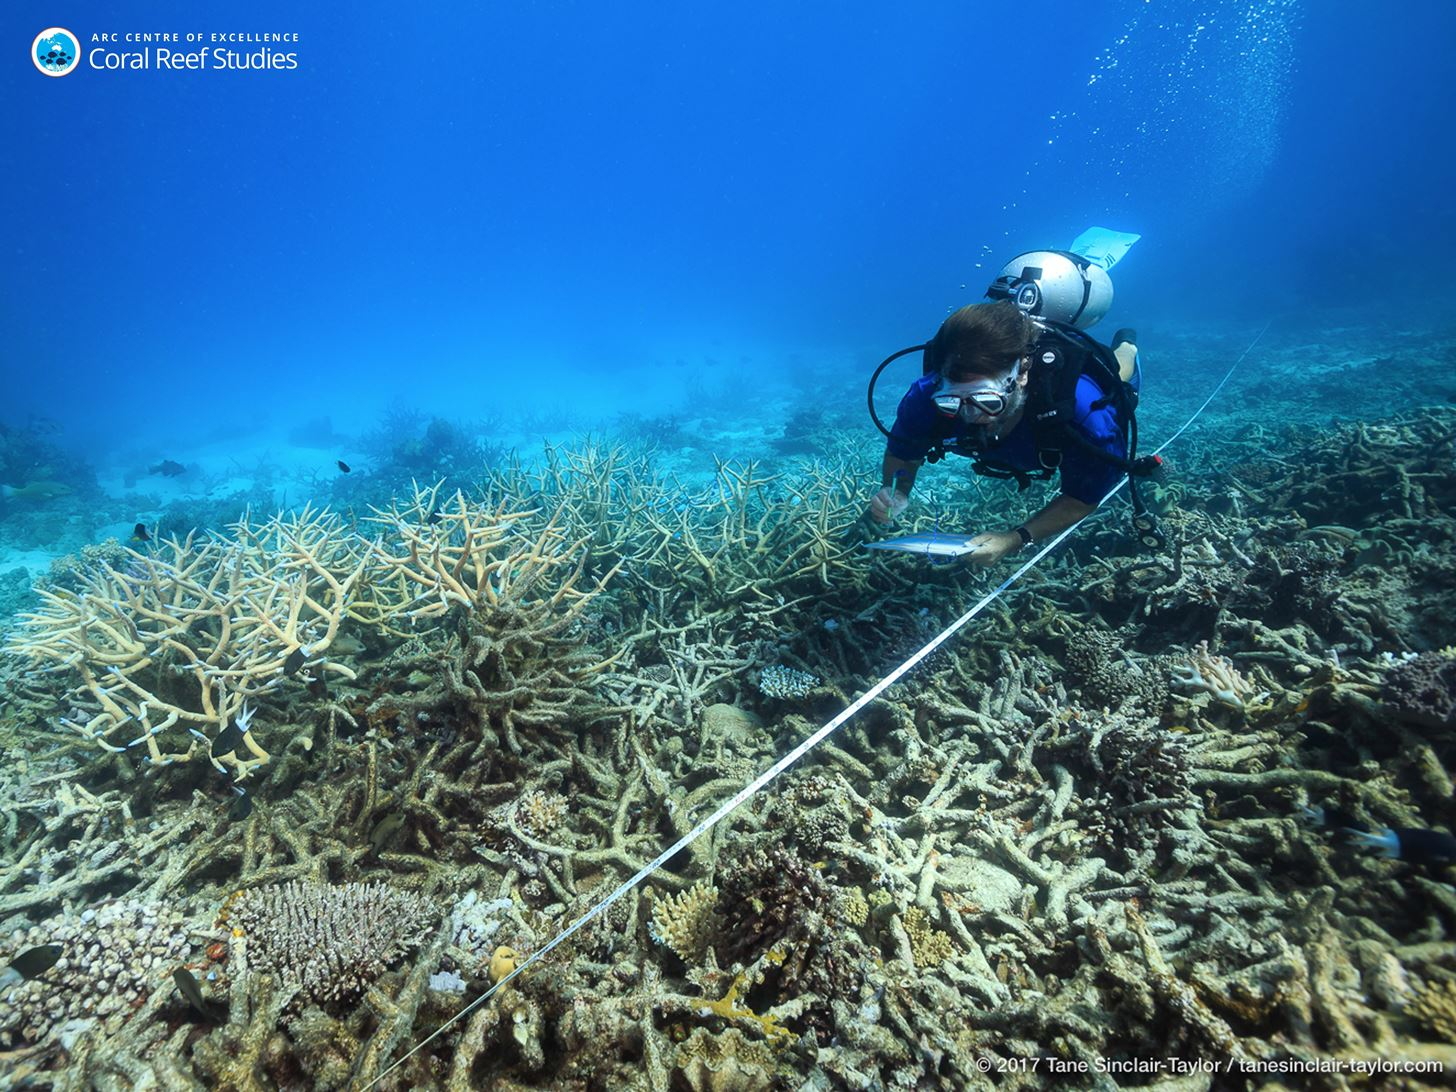 Microbes Lost from Corals Due to Global Warming Cause 90% of Great Barrier Reef to Bleach